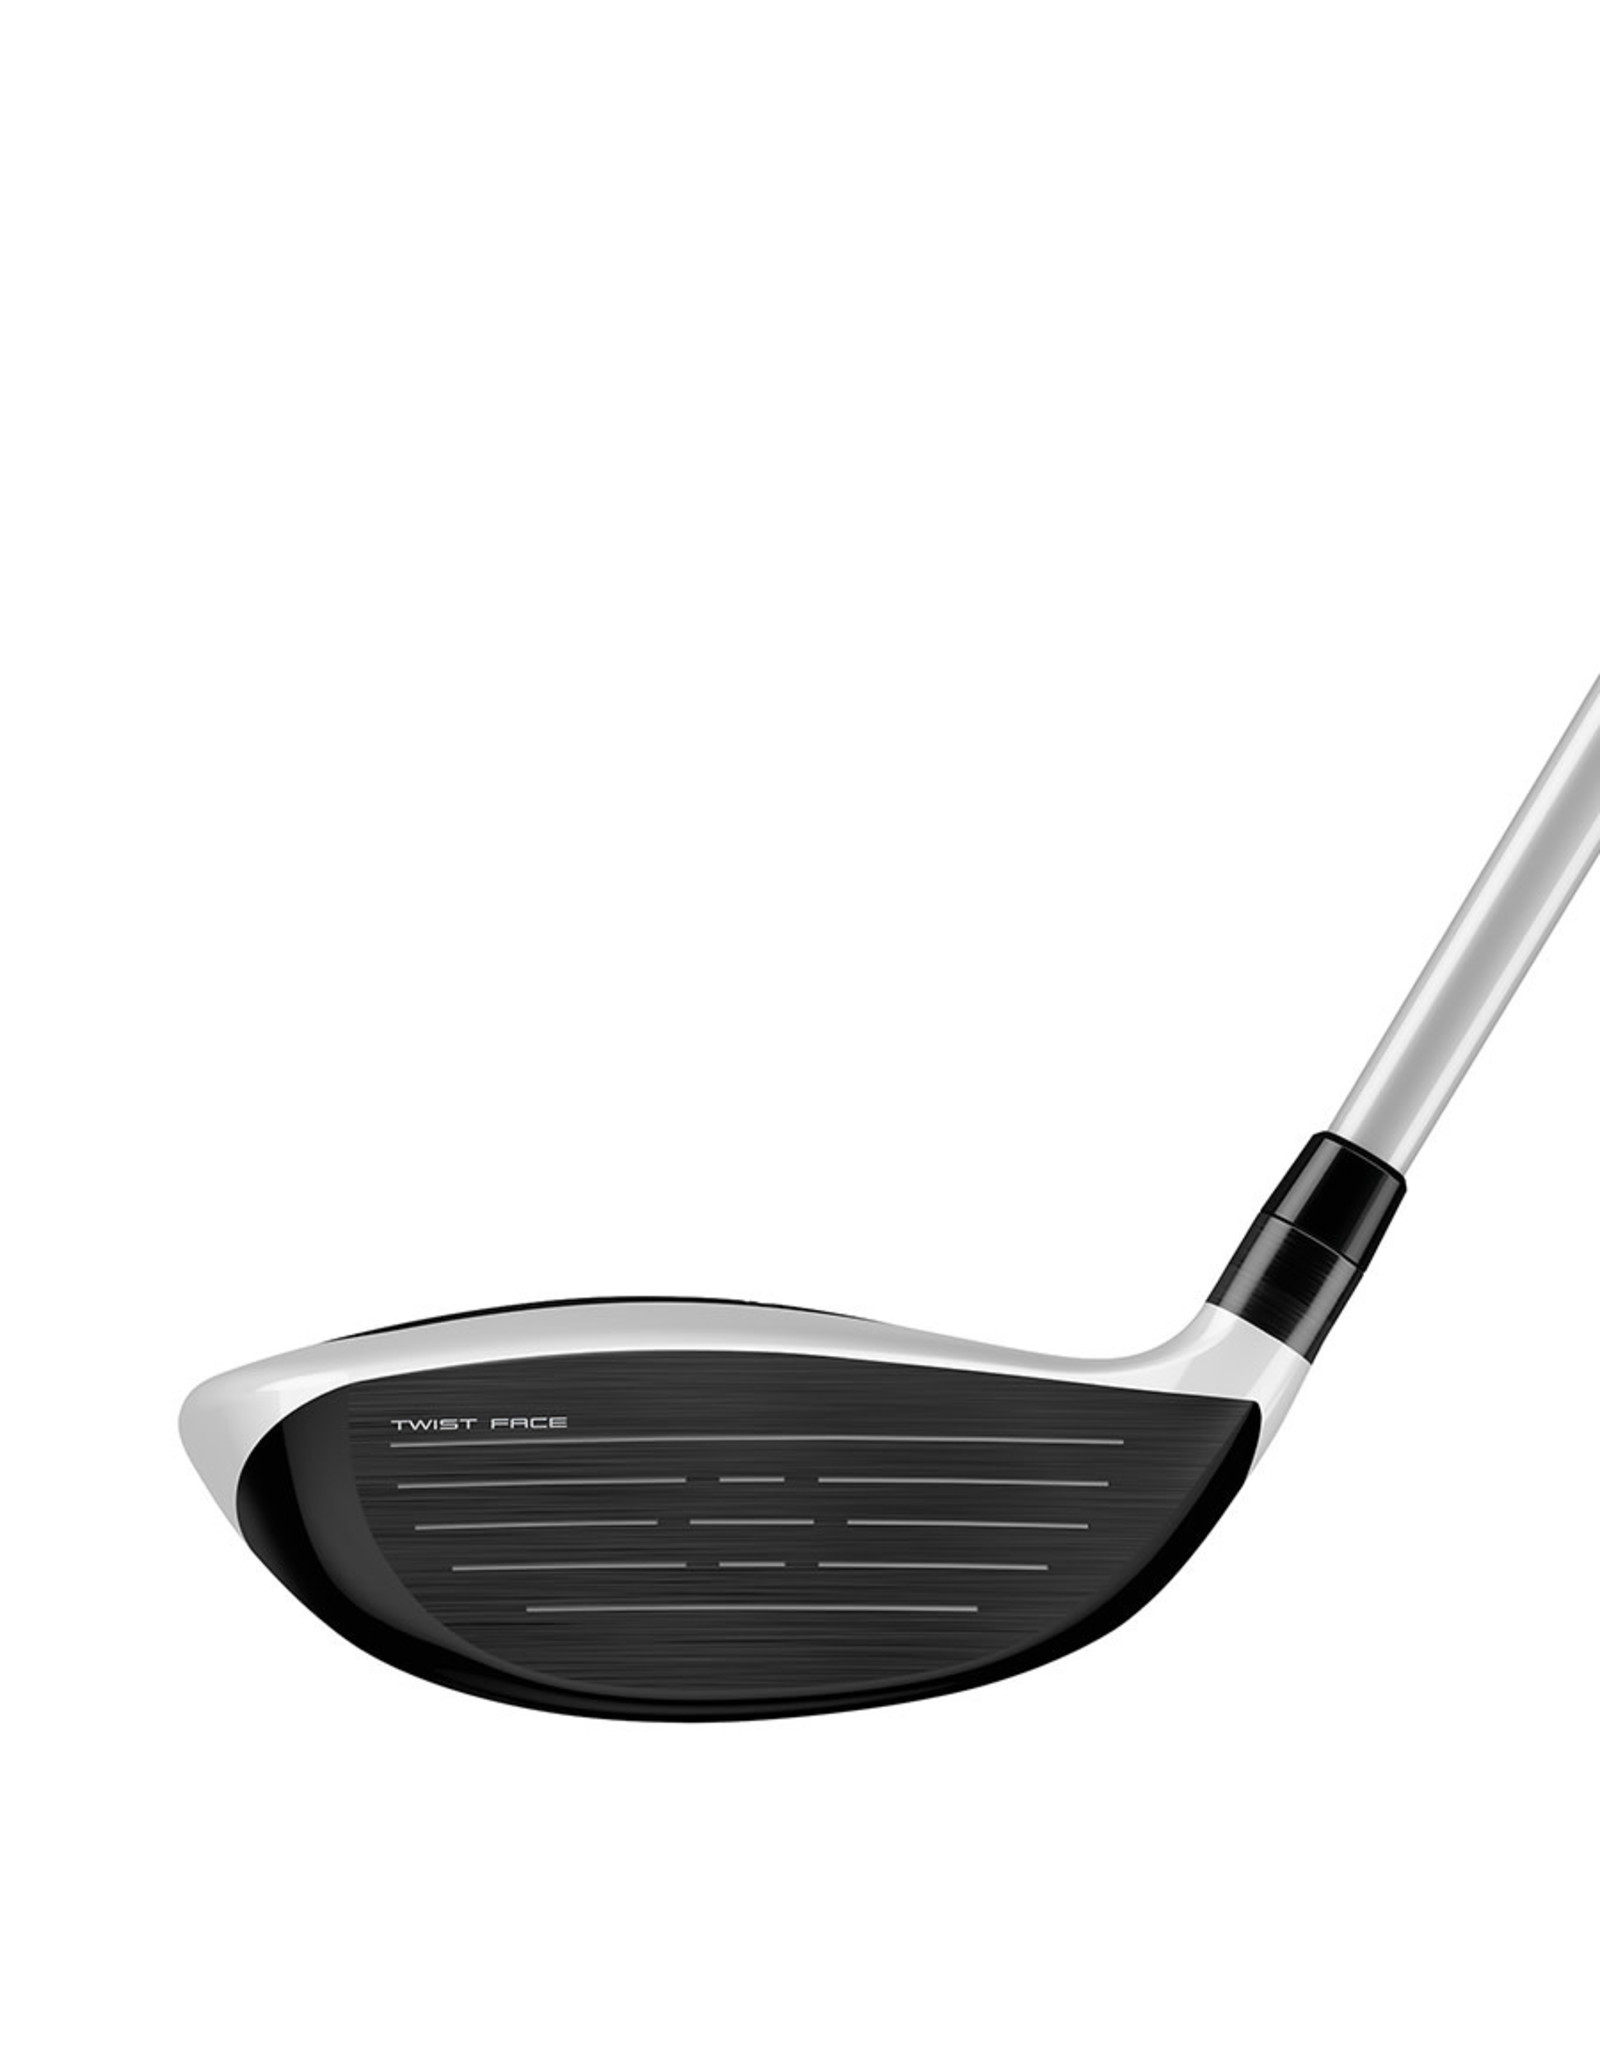 Taylor Made TaylorMade SIM2 Max D Fairway RH